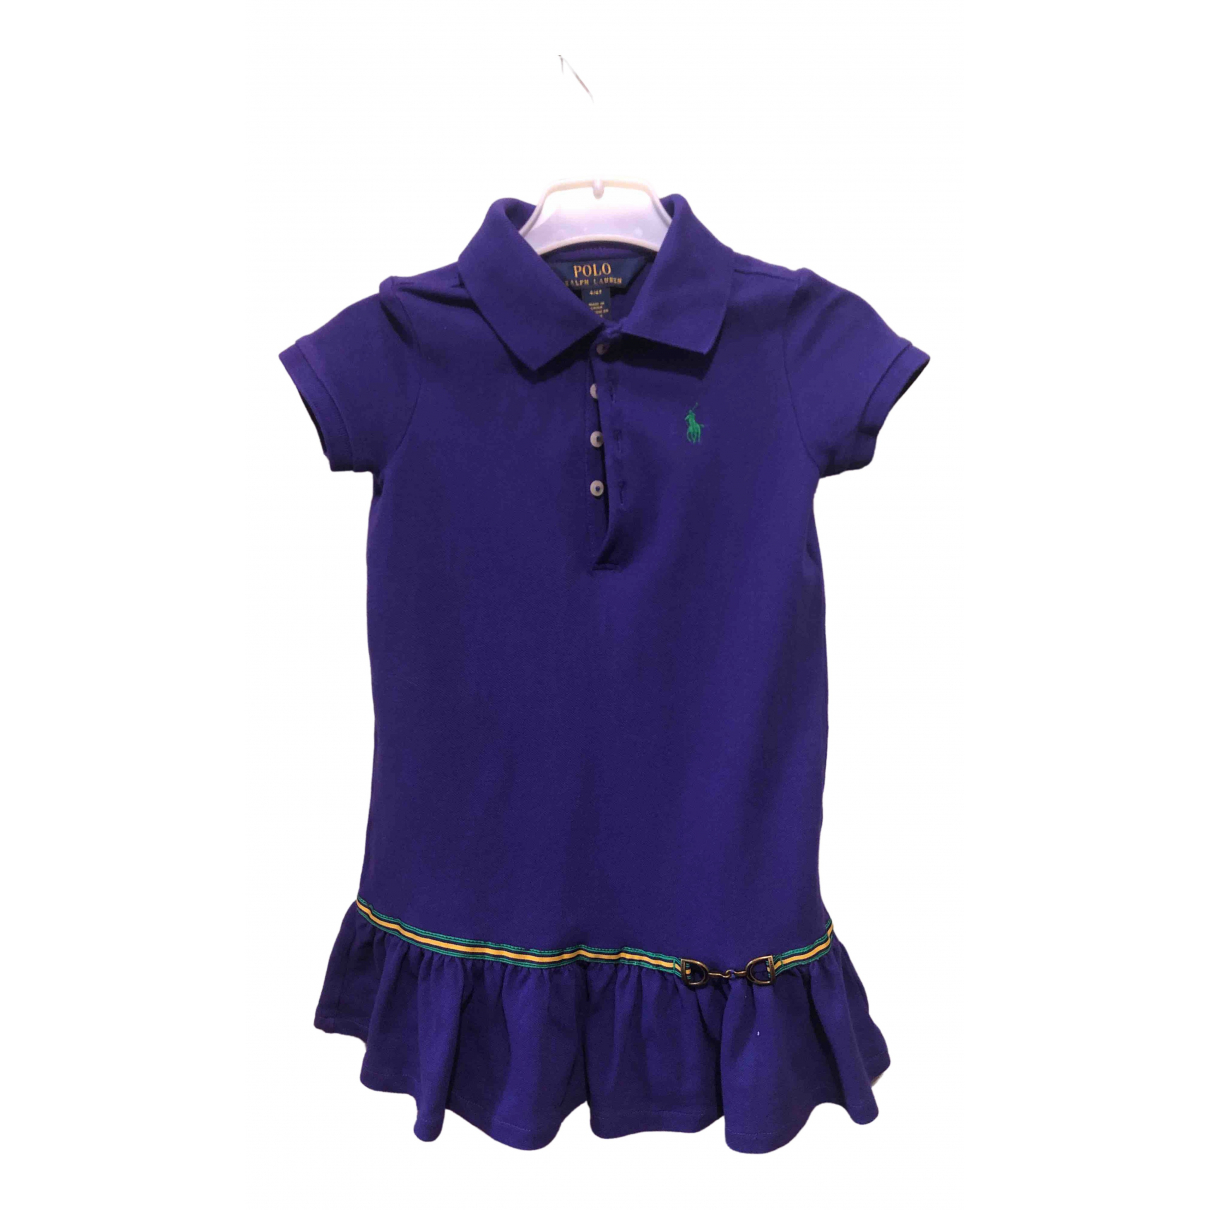 Polo Ralph Lauren \N Purple Cotton dress for Kids 4 years - up to 102cm FR